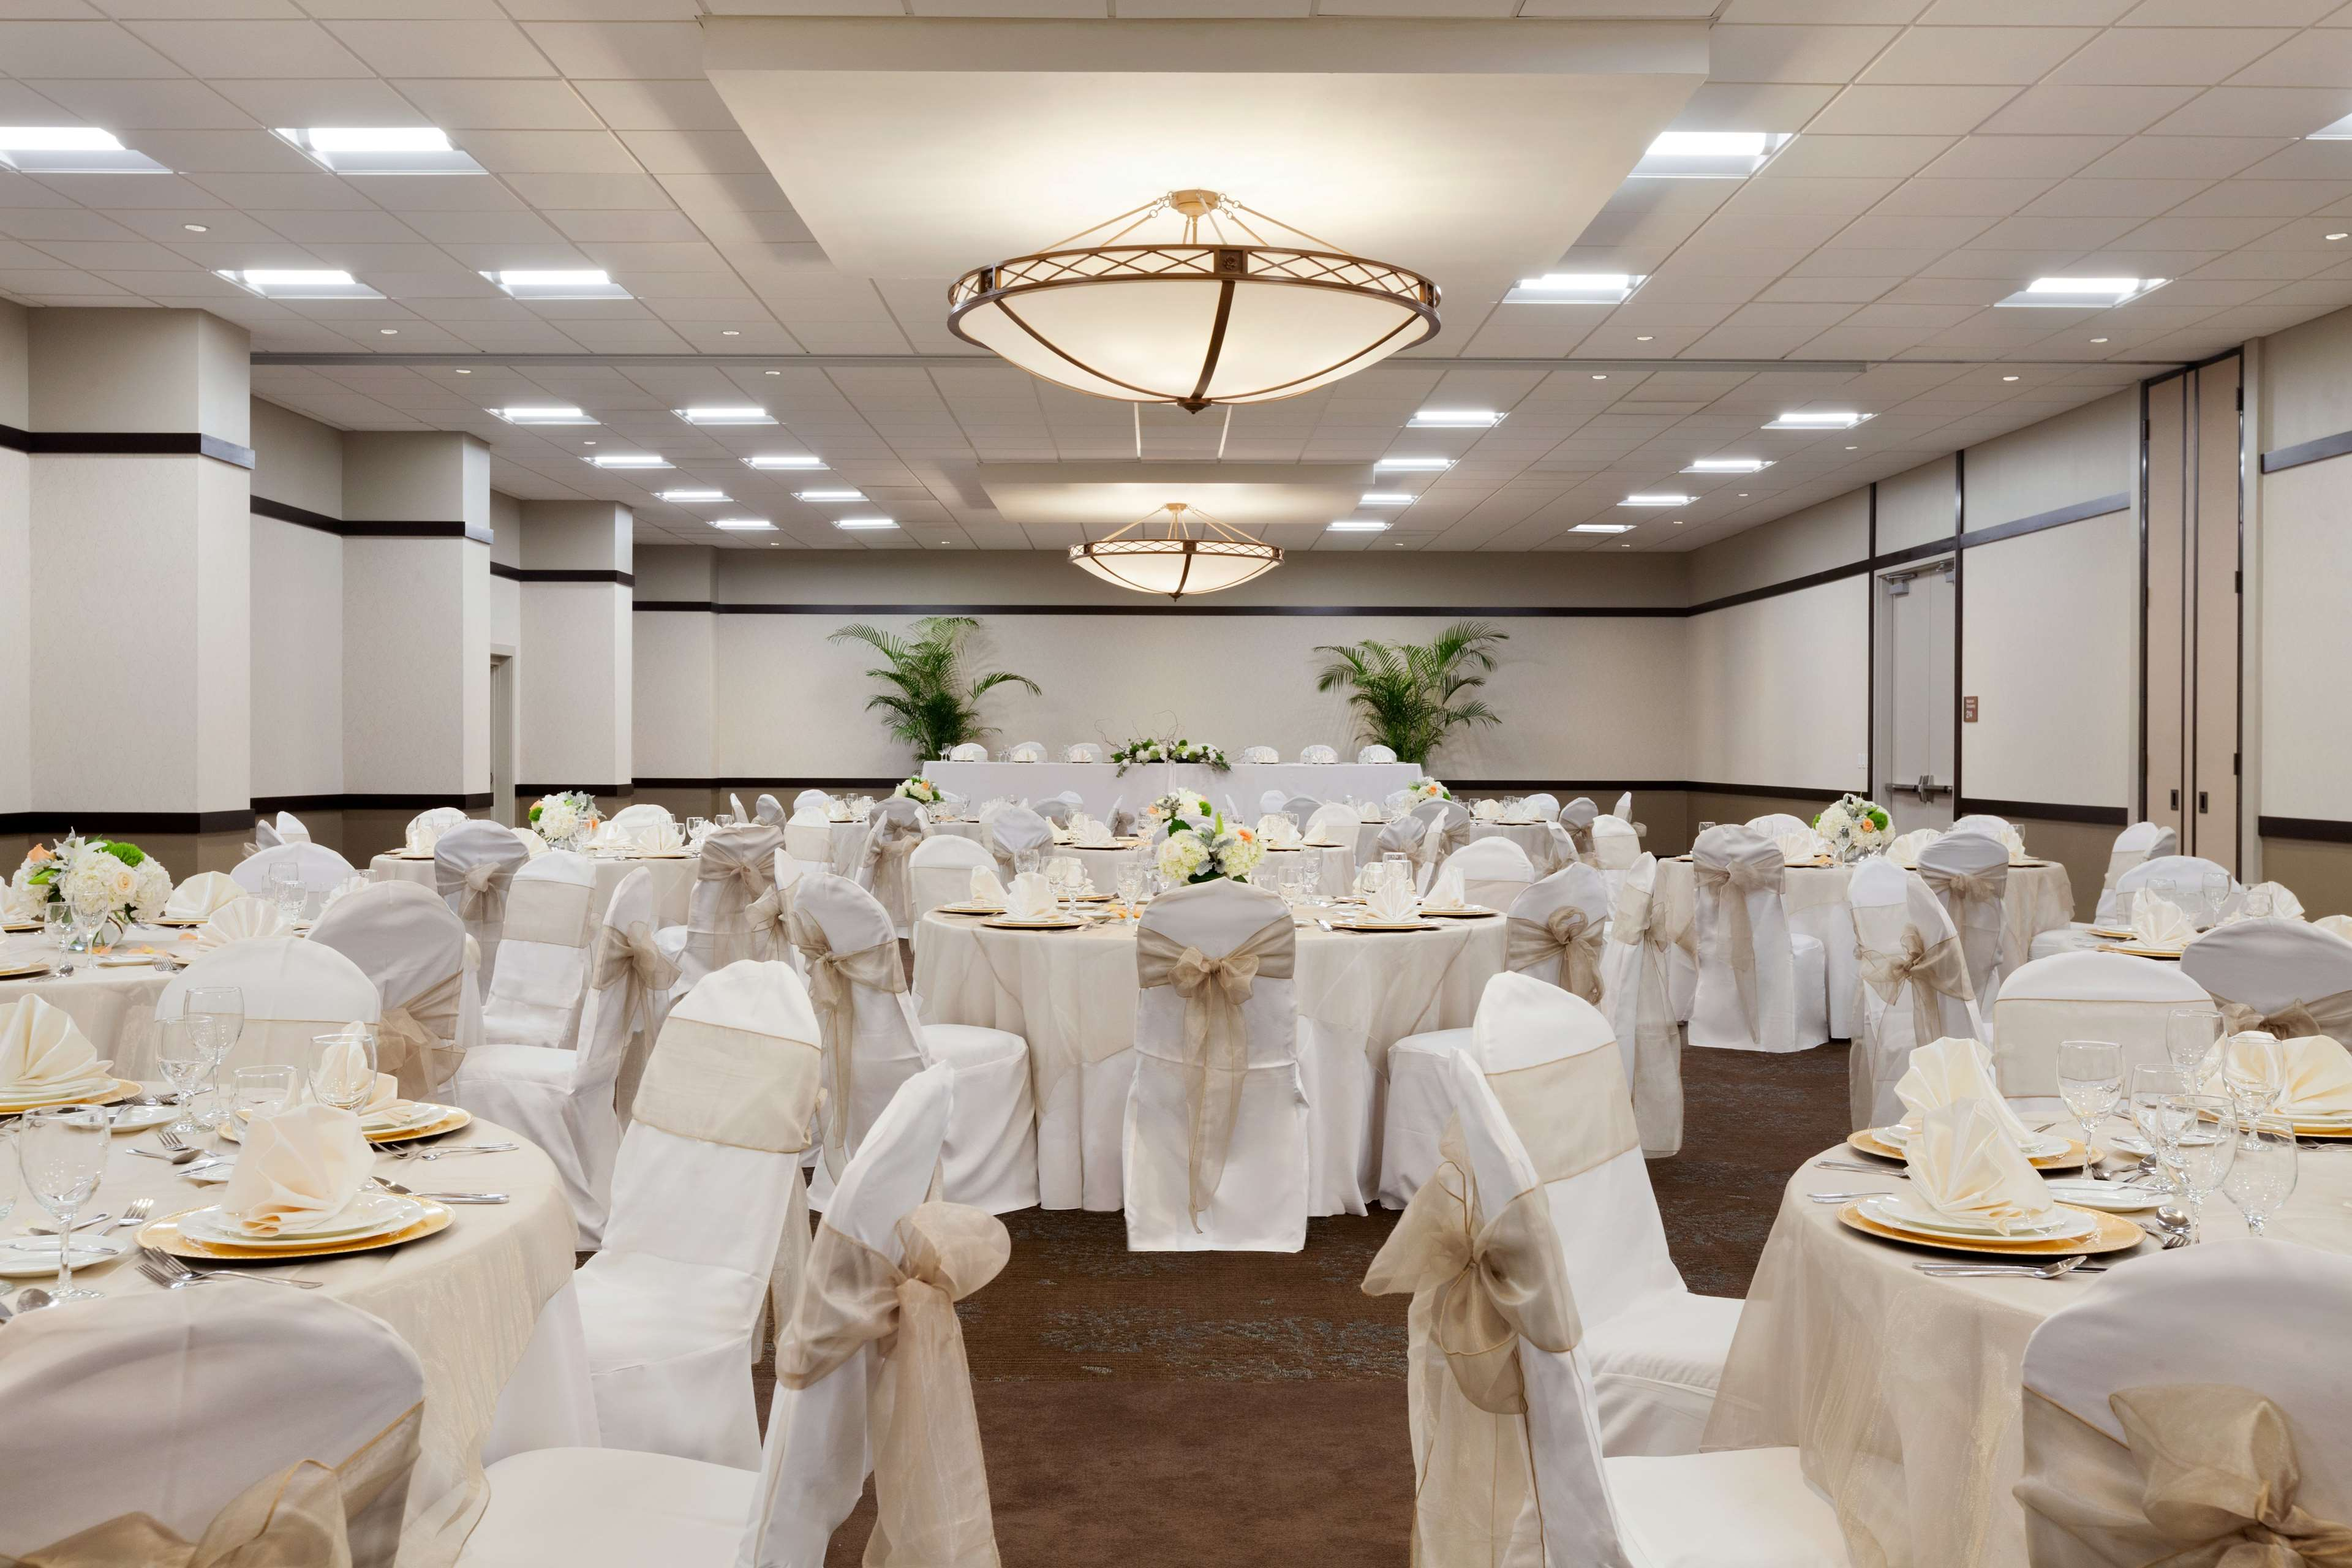 Embassy Suites by Hilton Jacksonville Baymeadows image 32